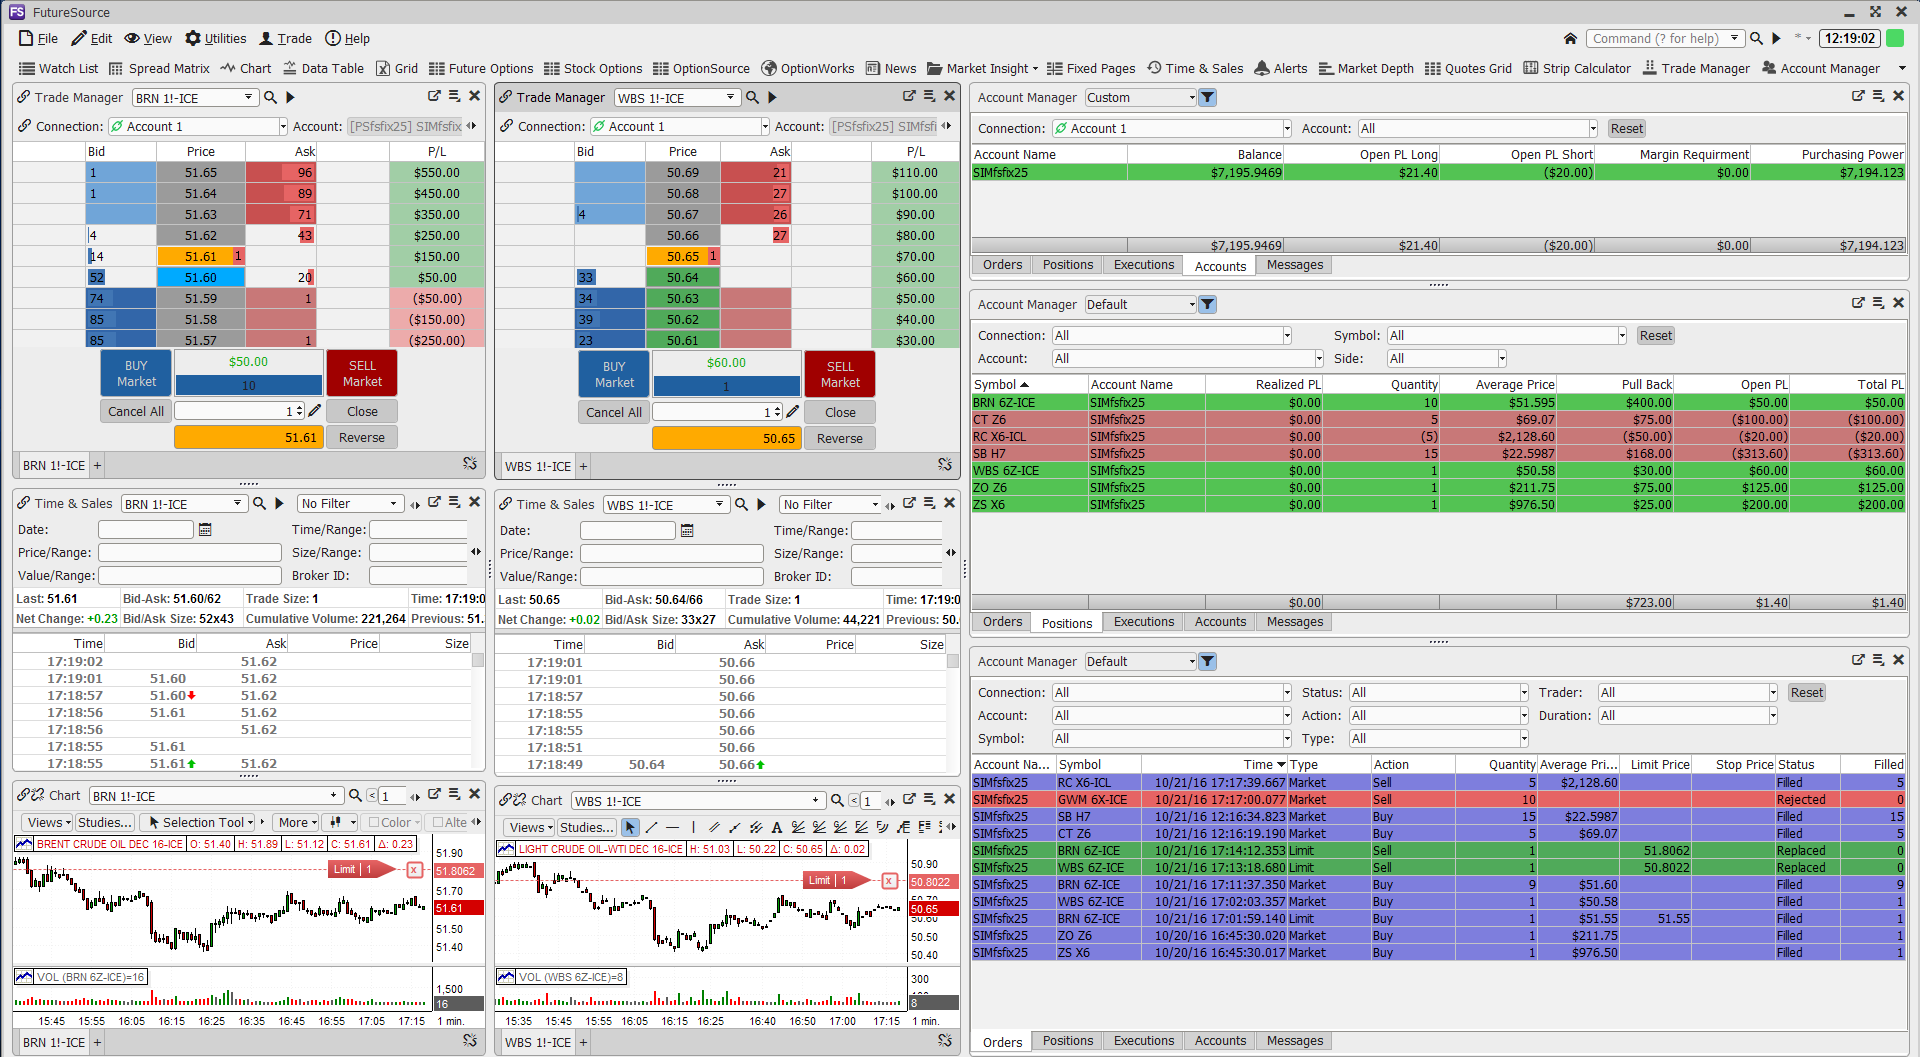 Futures Market Quotes Ice Futuresource Realtime Market Data For Commodities